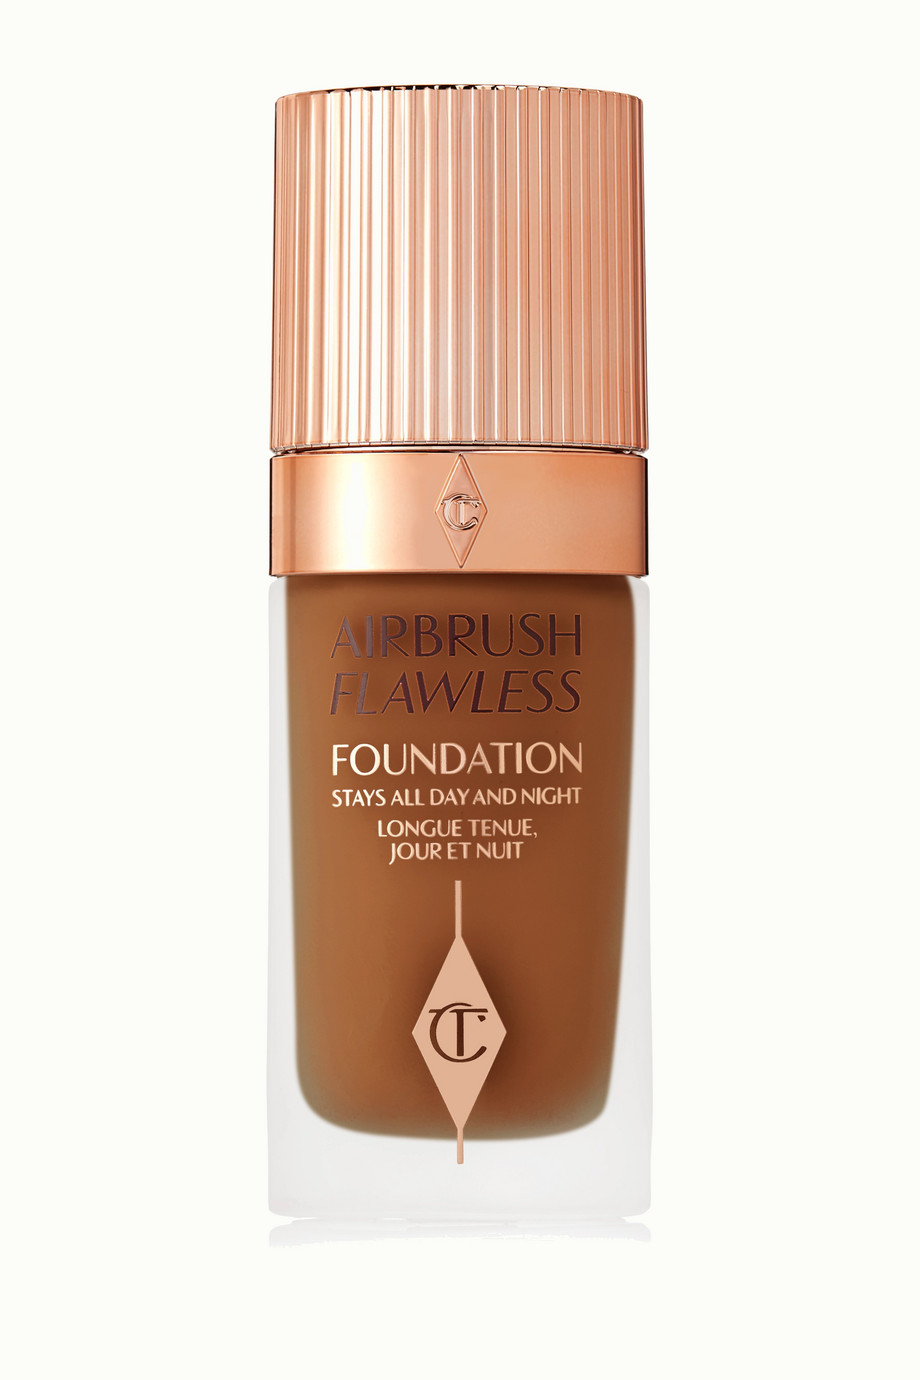 Charlotte Tilbury Airbrush Flawless Foundation - 13 Neutral, 30ml